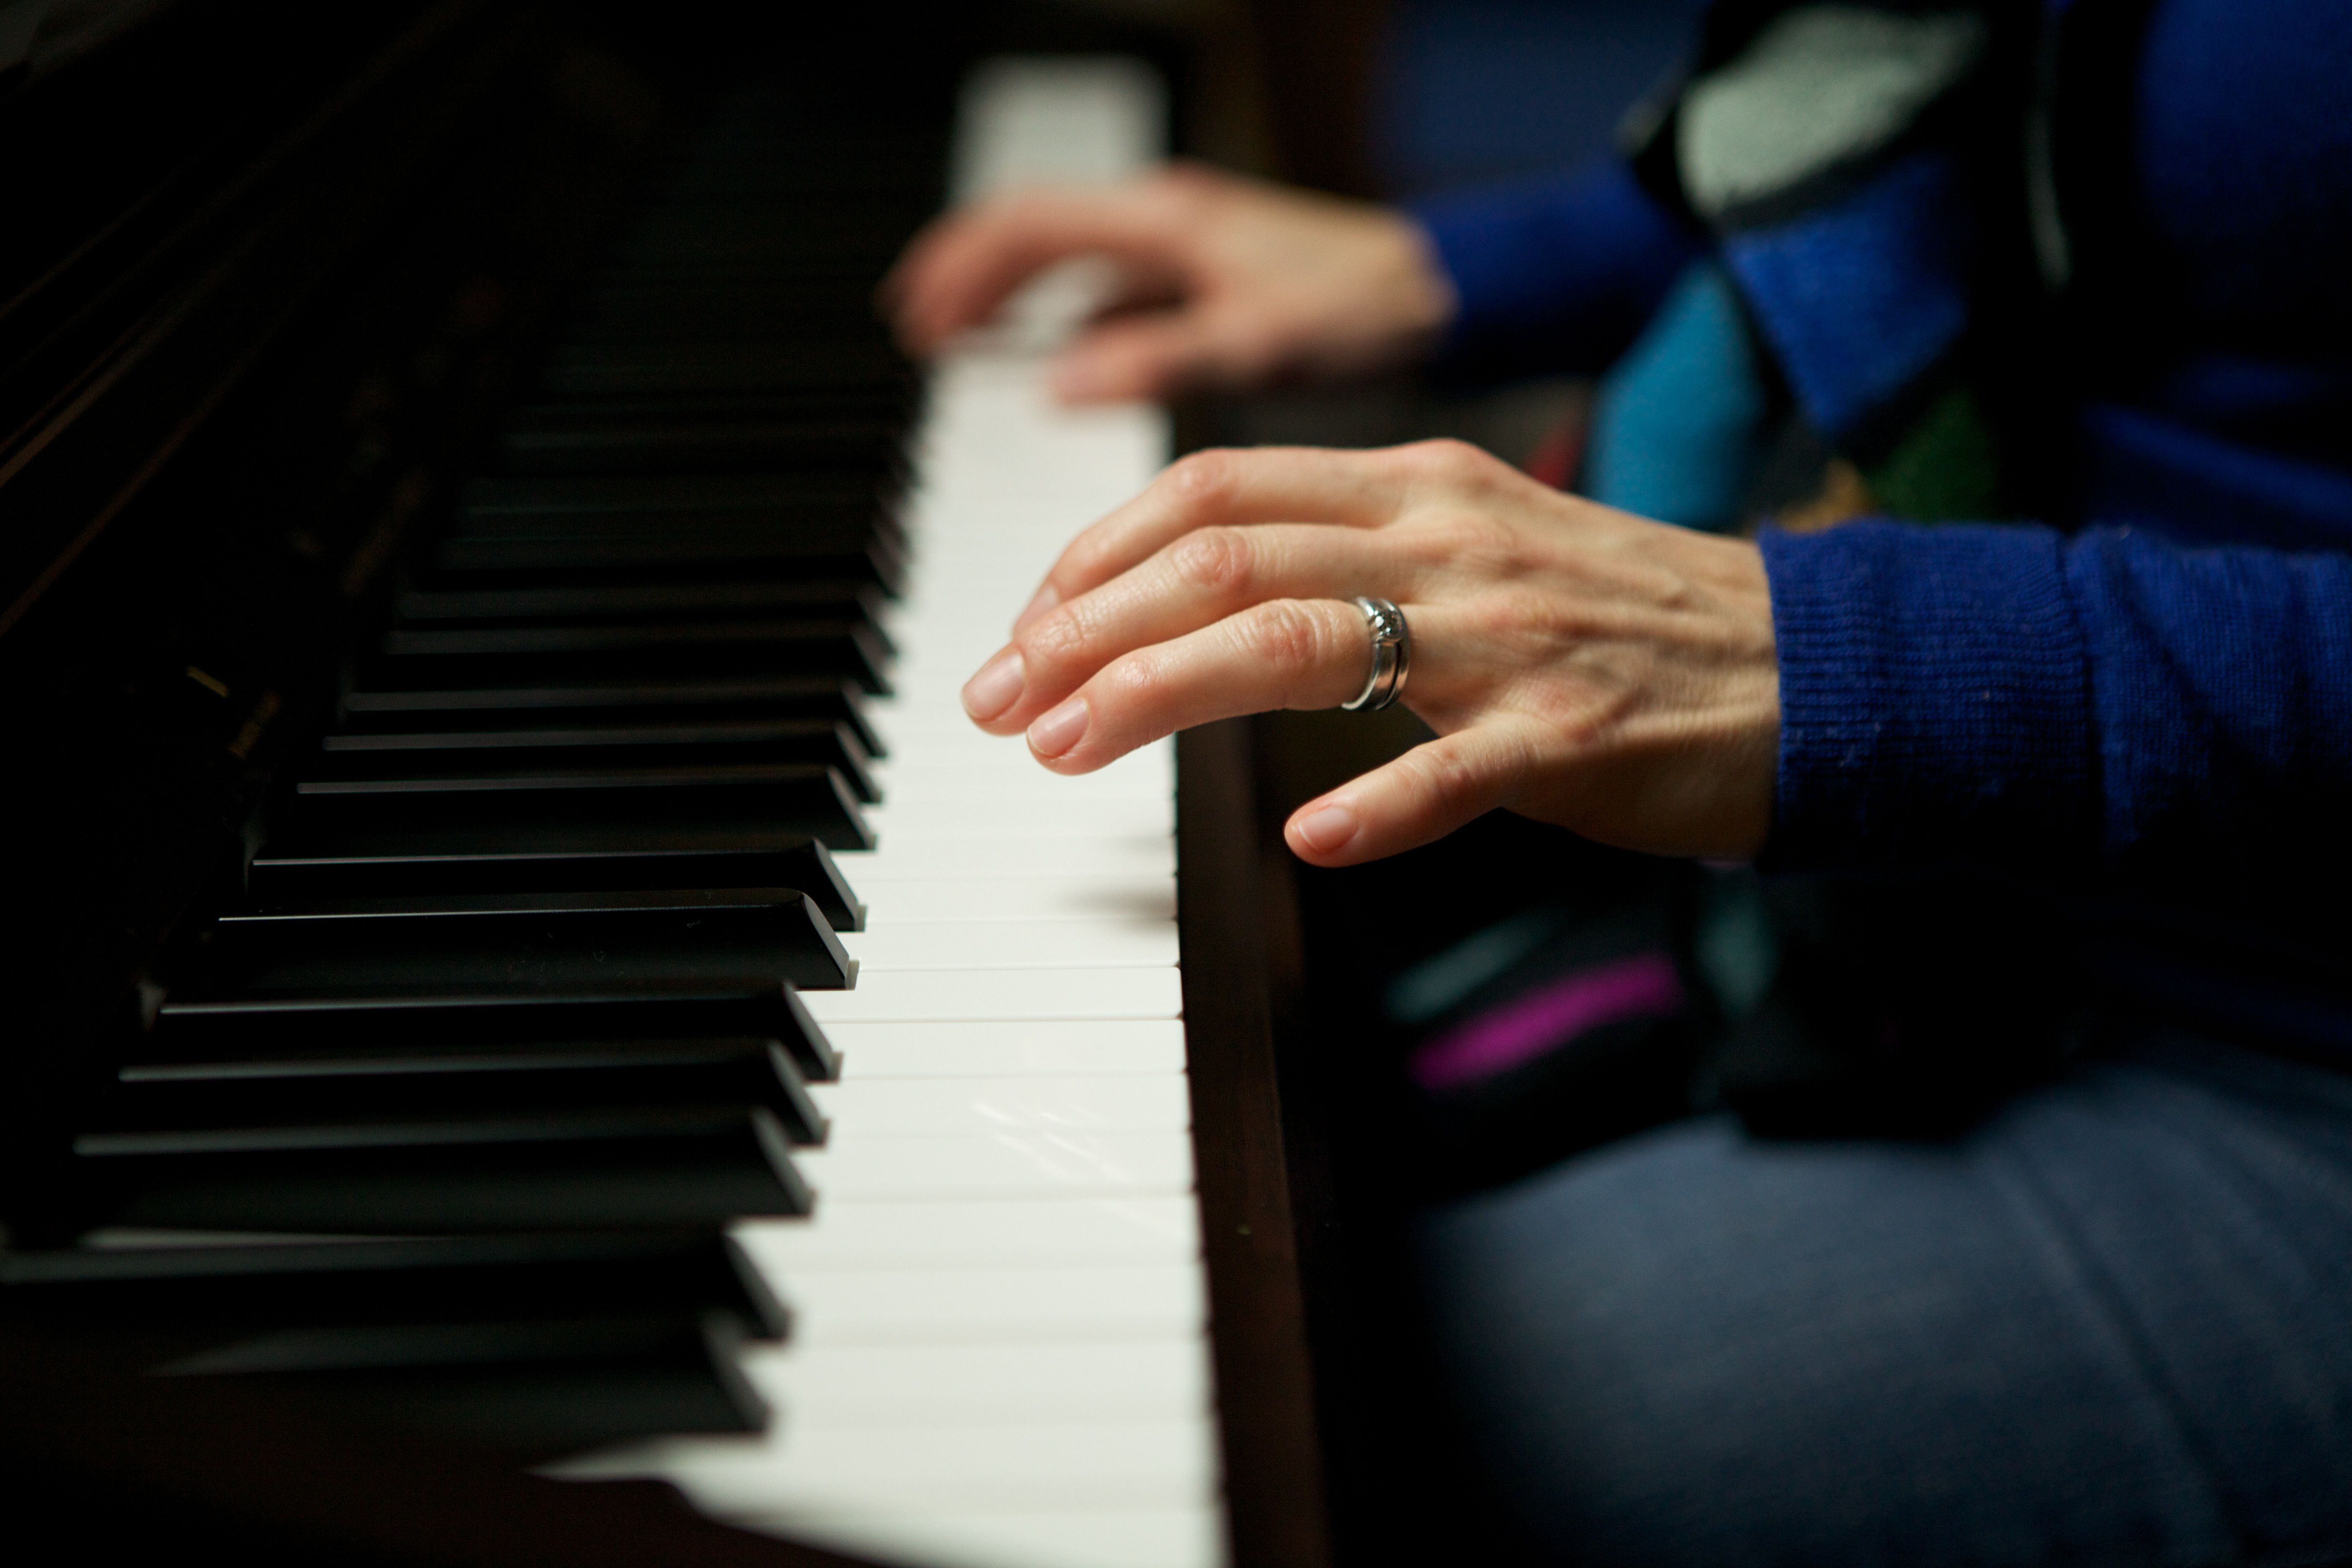 Piano scale chord fingering for the left hand woman playing piano hexwebz Image collections